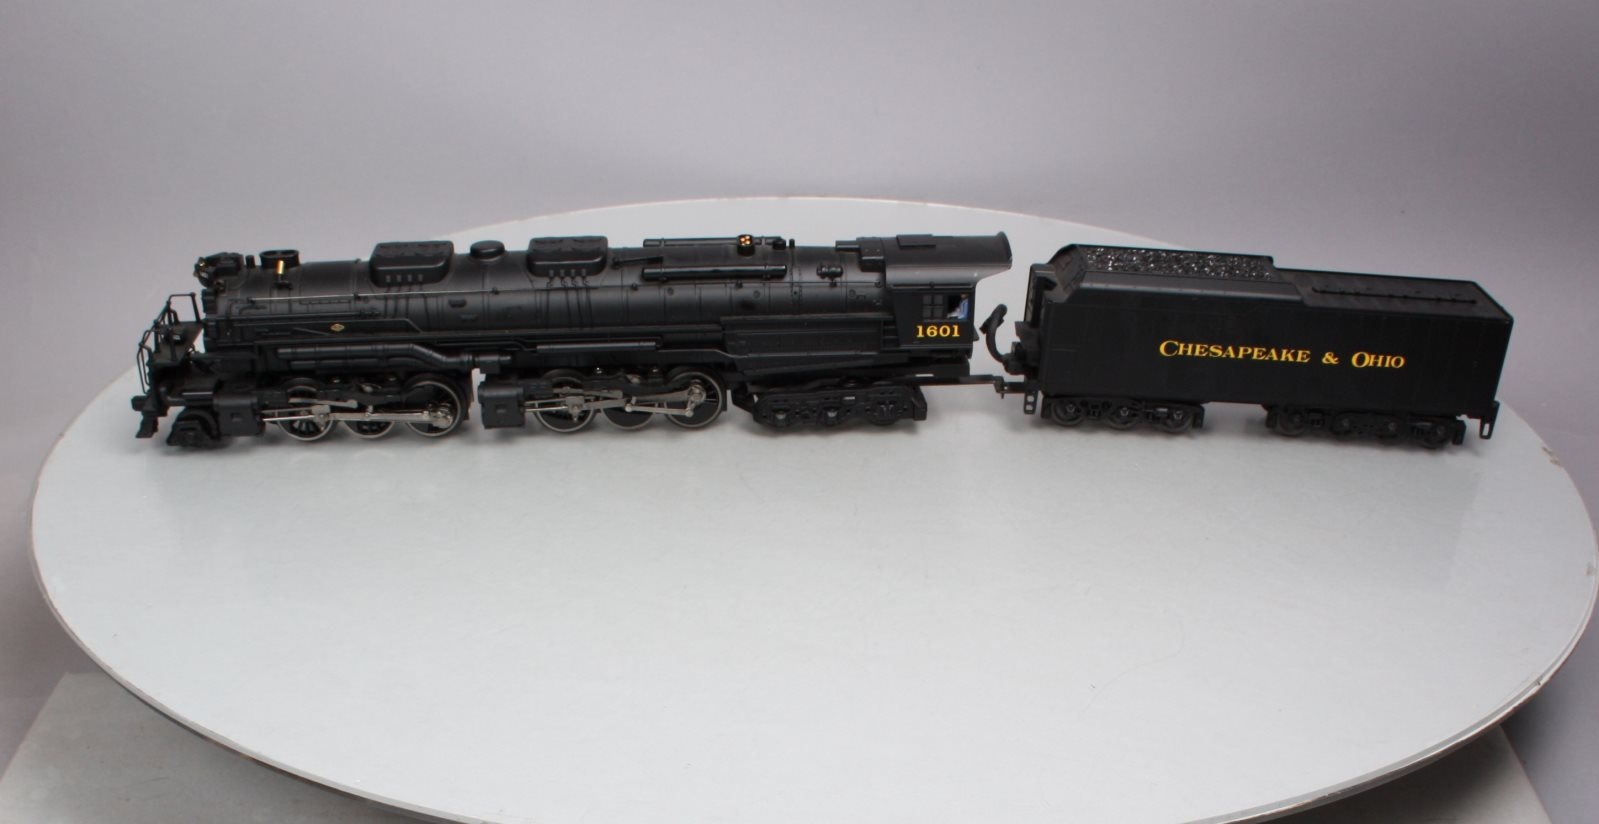 Buy K-Line K3715-16015 1:58 Scale C&O Allegheny Steam Locomotive and